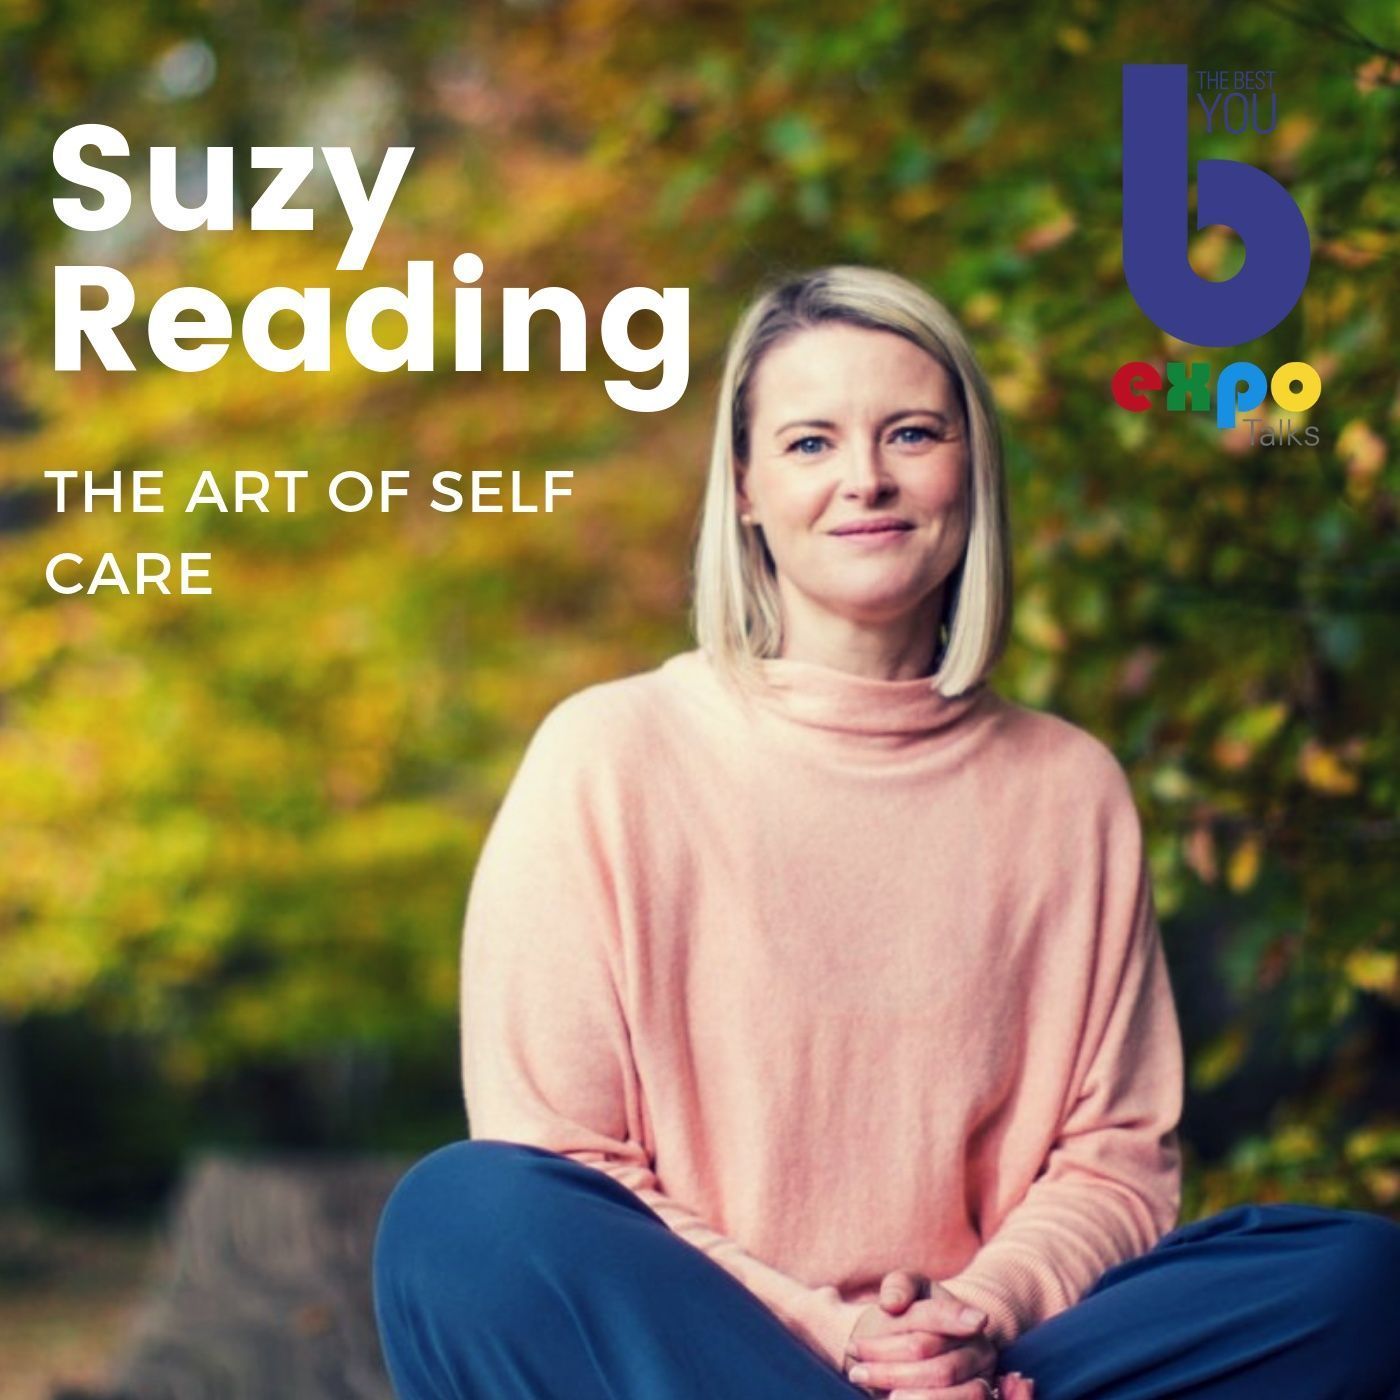 Listen to Suzy Reading at The Best You EXPO